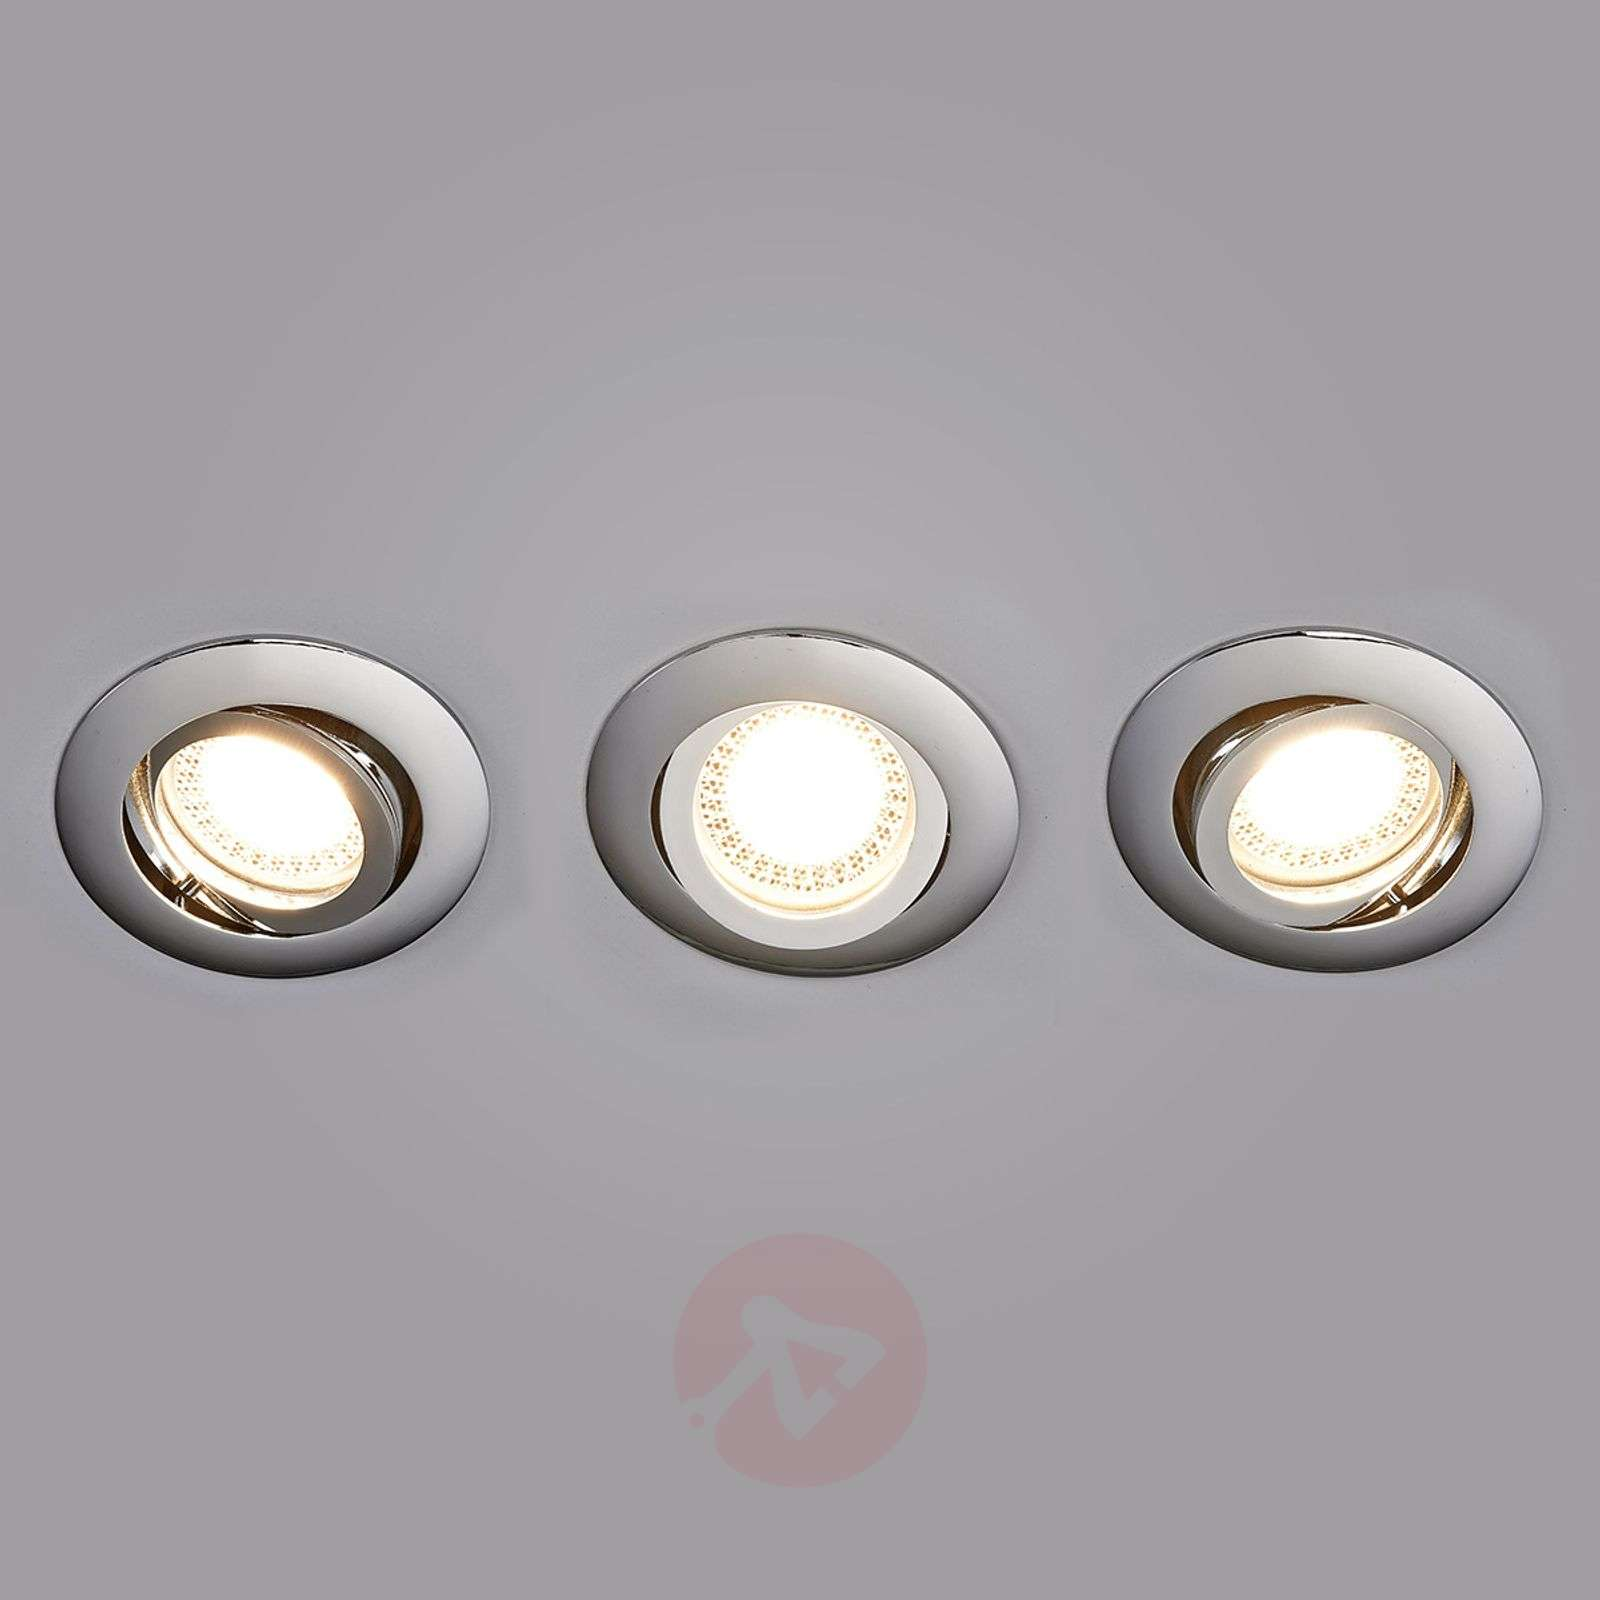 Set de 3 spots encastrés LED Lisara chromés ronds-9950355-01